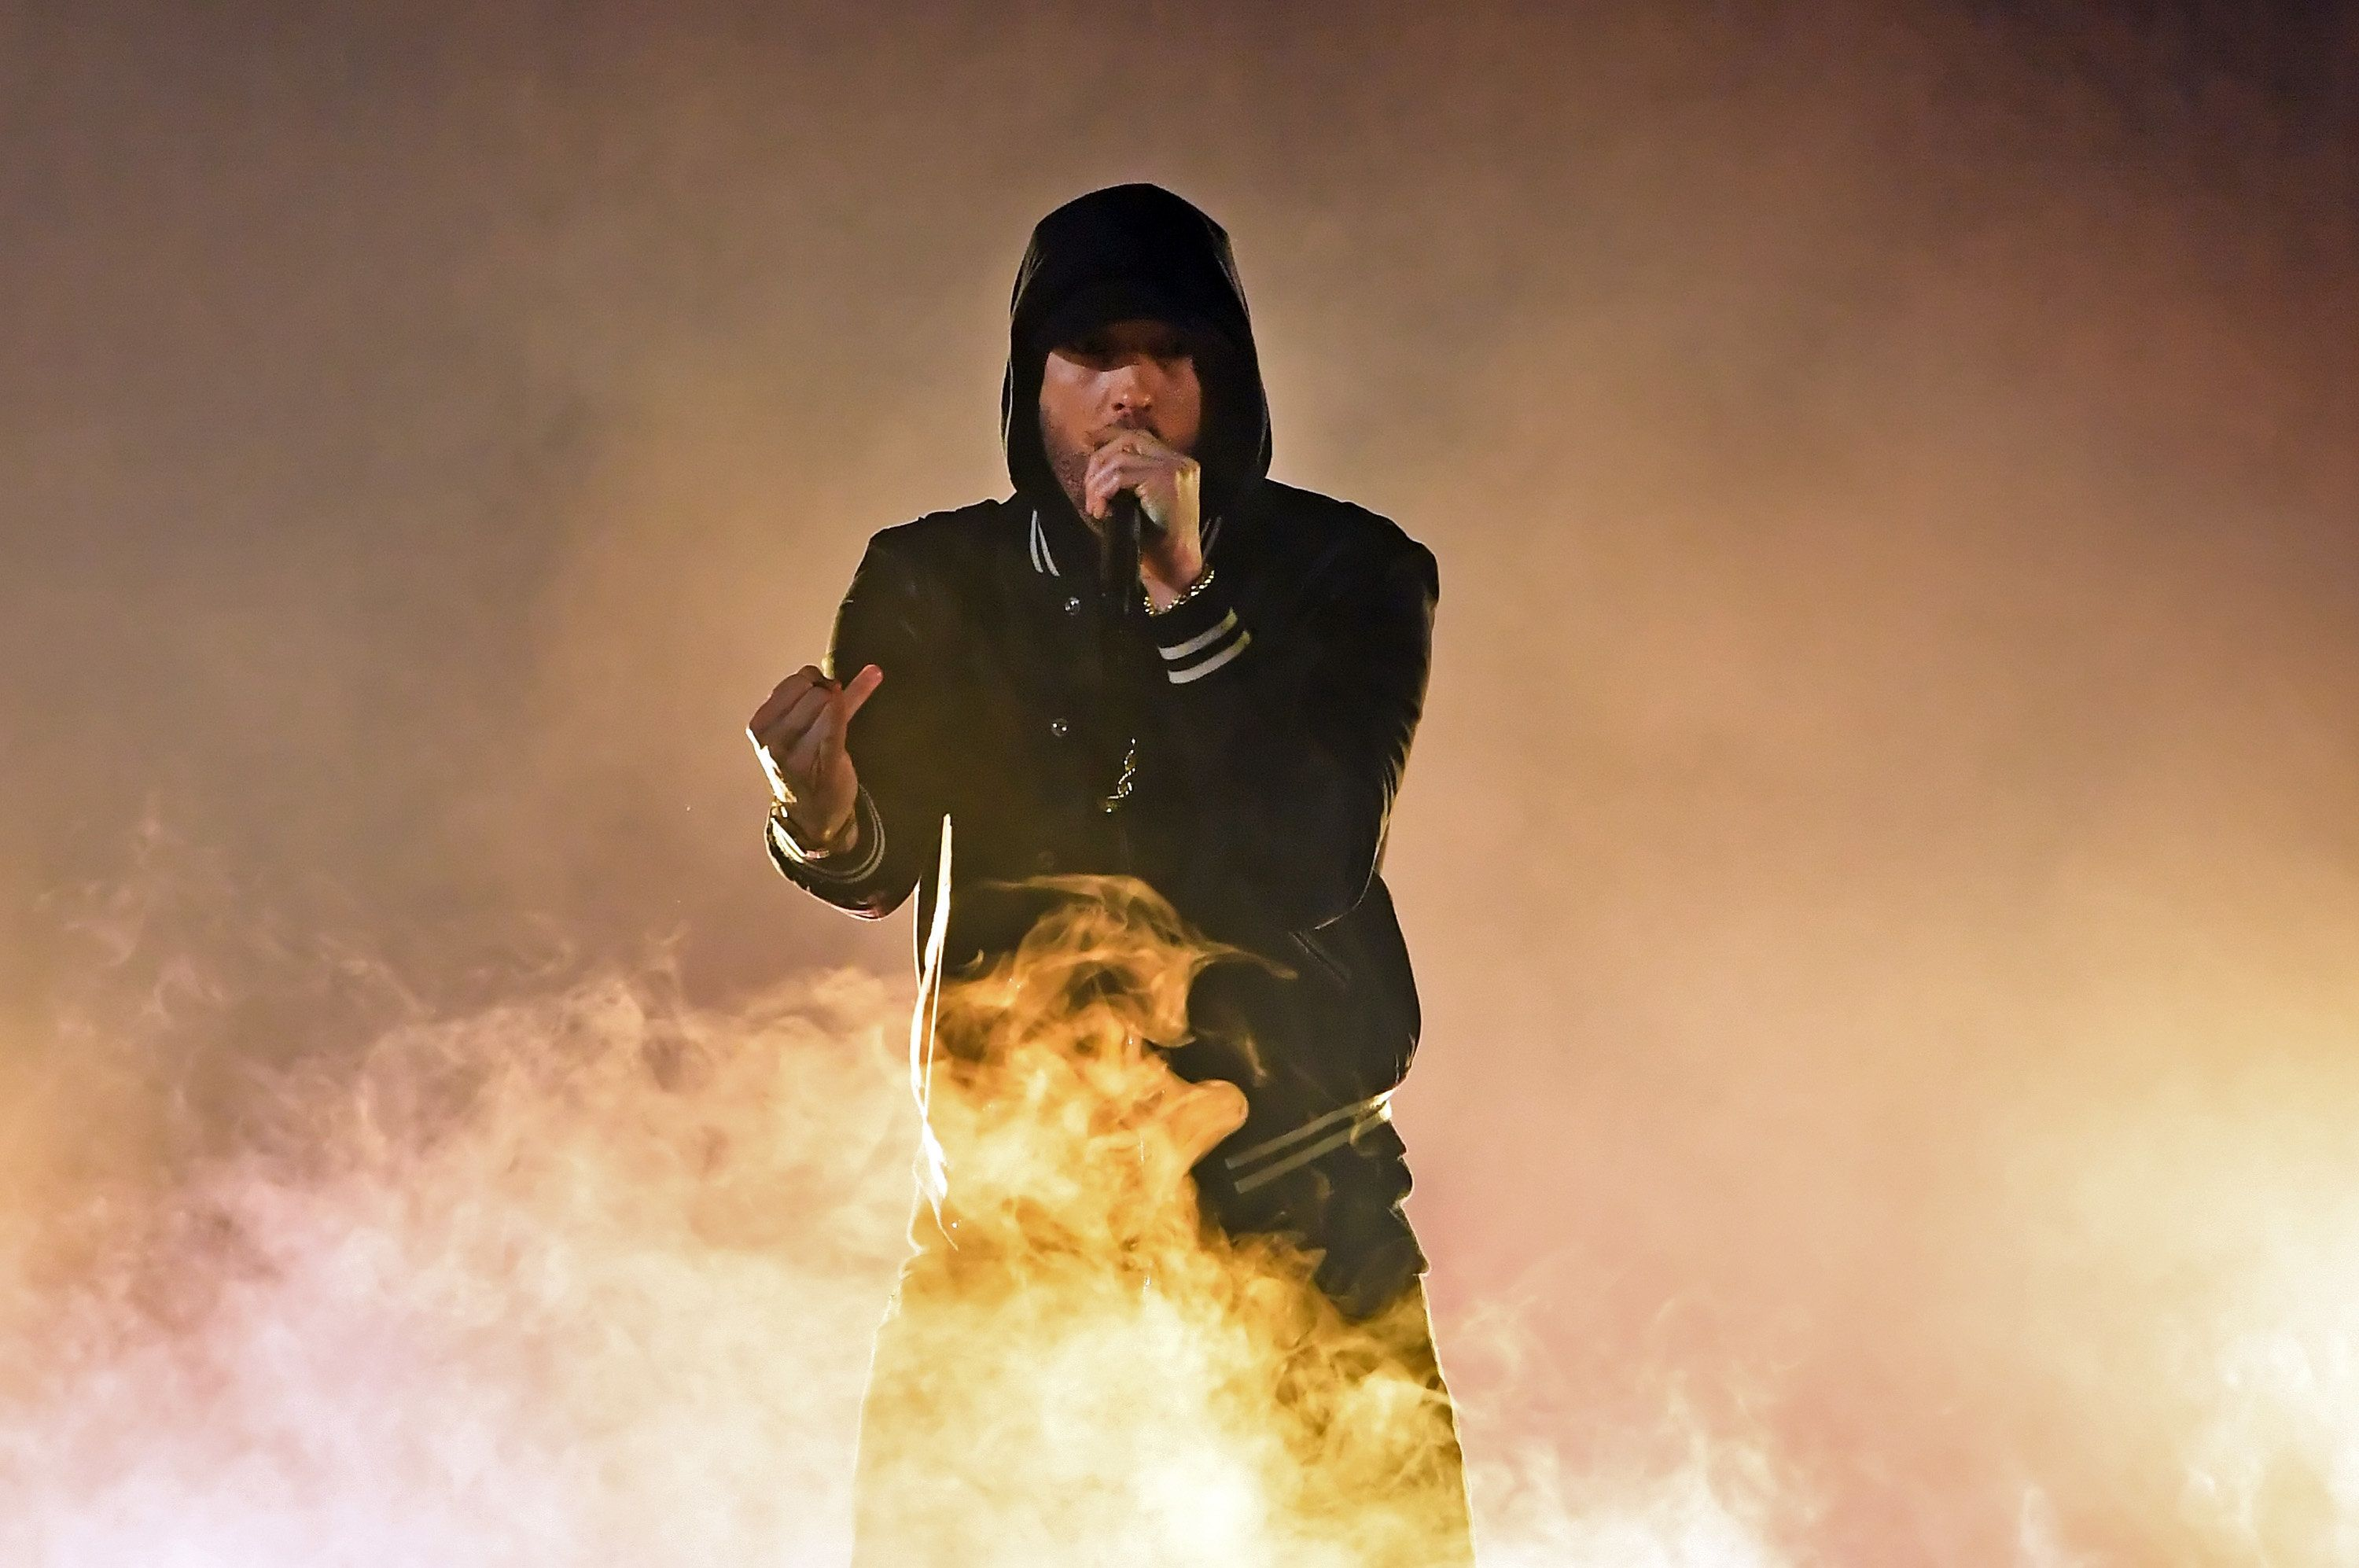 Eminem Tackles NRA And Gun Violence With iHeartRadio Awards